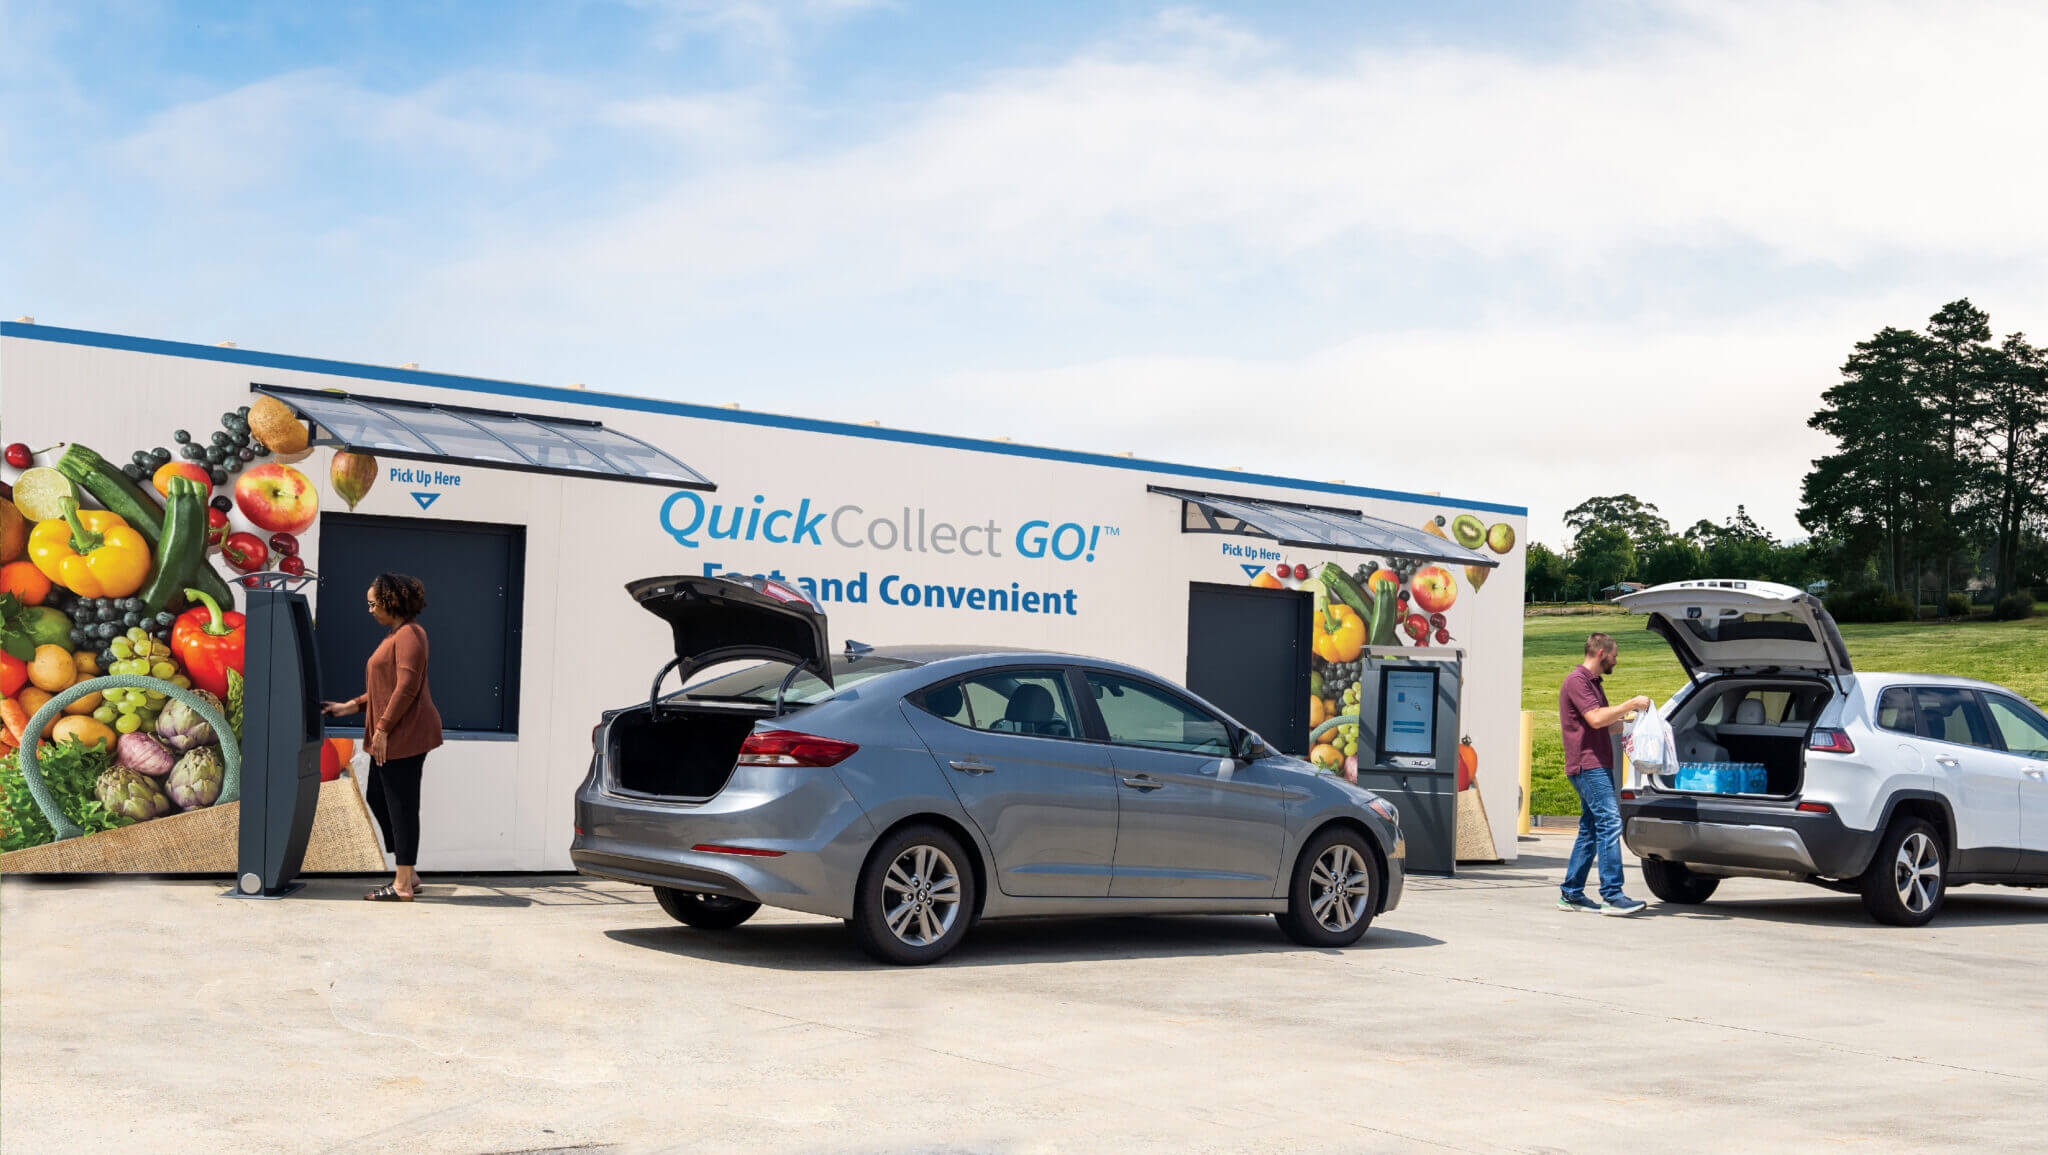 QuiCkCollect XL Grocery Drive Up Kiosk